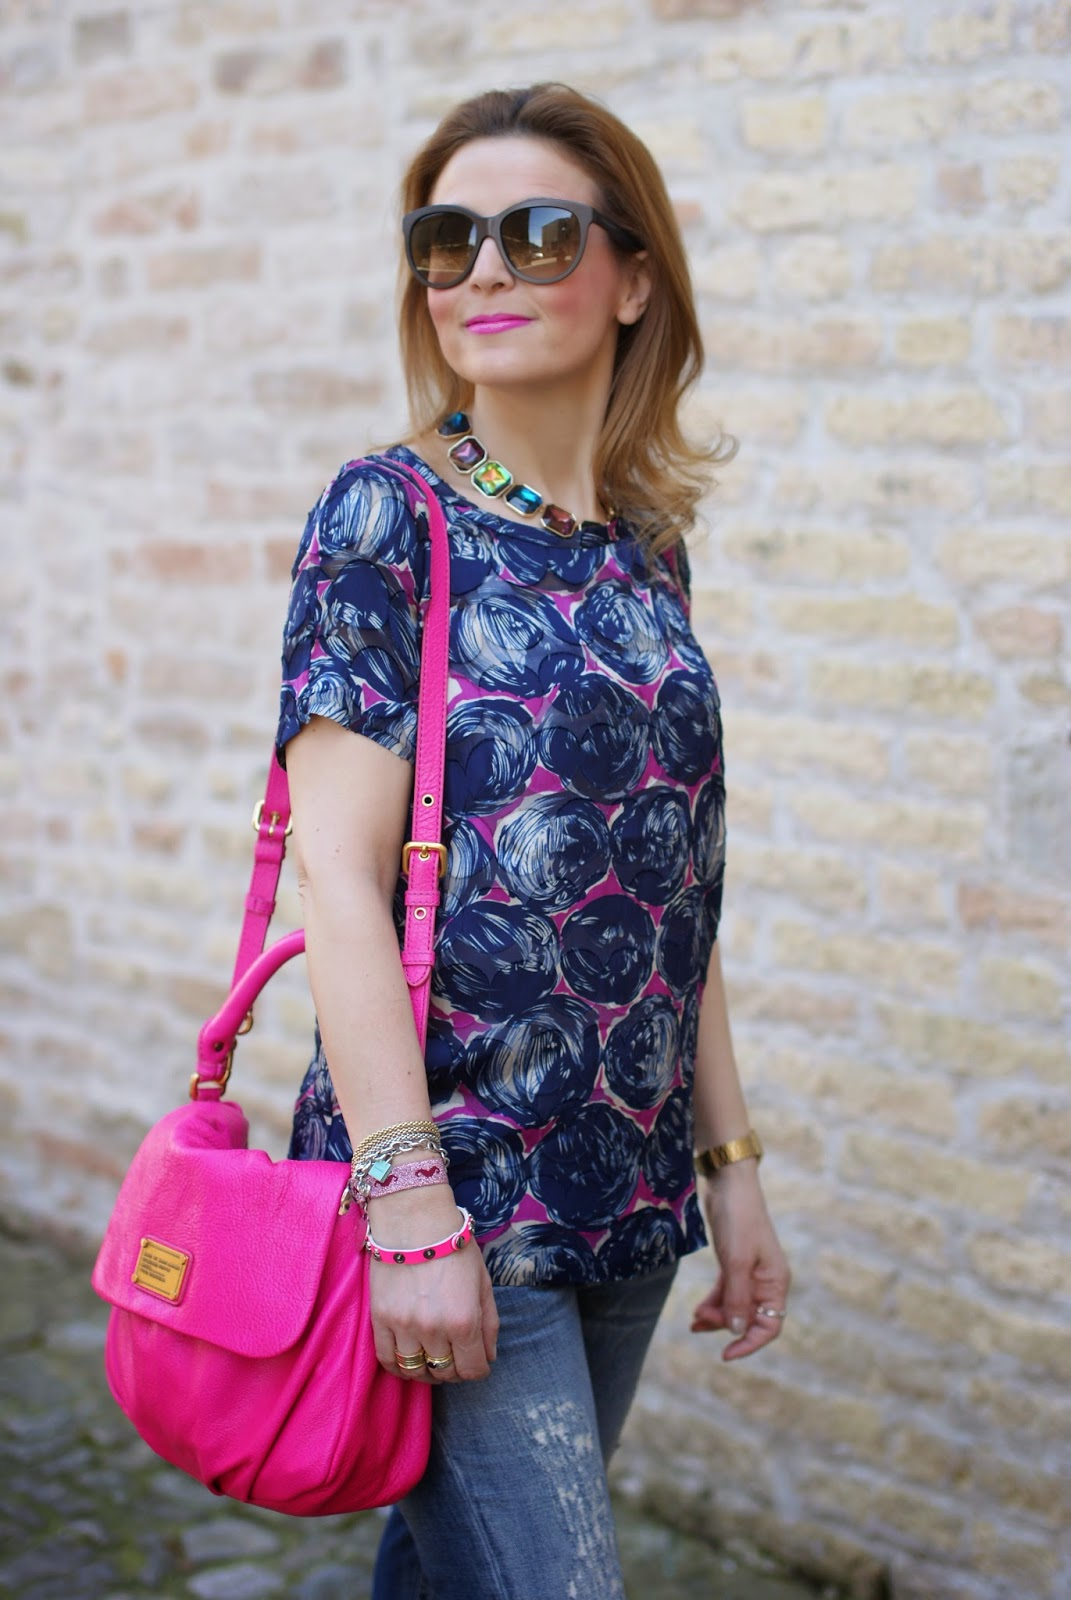 Tory Burch silk top, pink Marc jacobs bag, Fashion and Cookies, fashion blog, fashion blogger